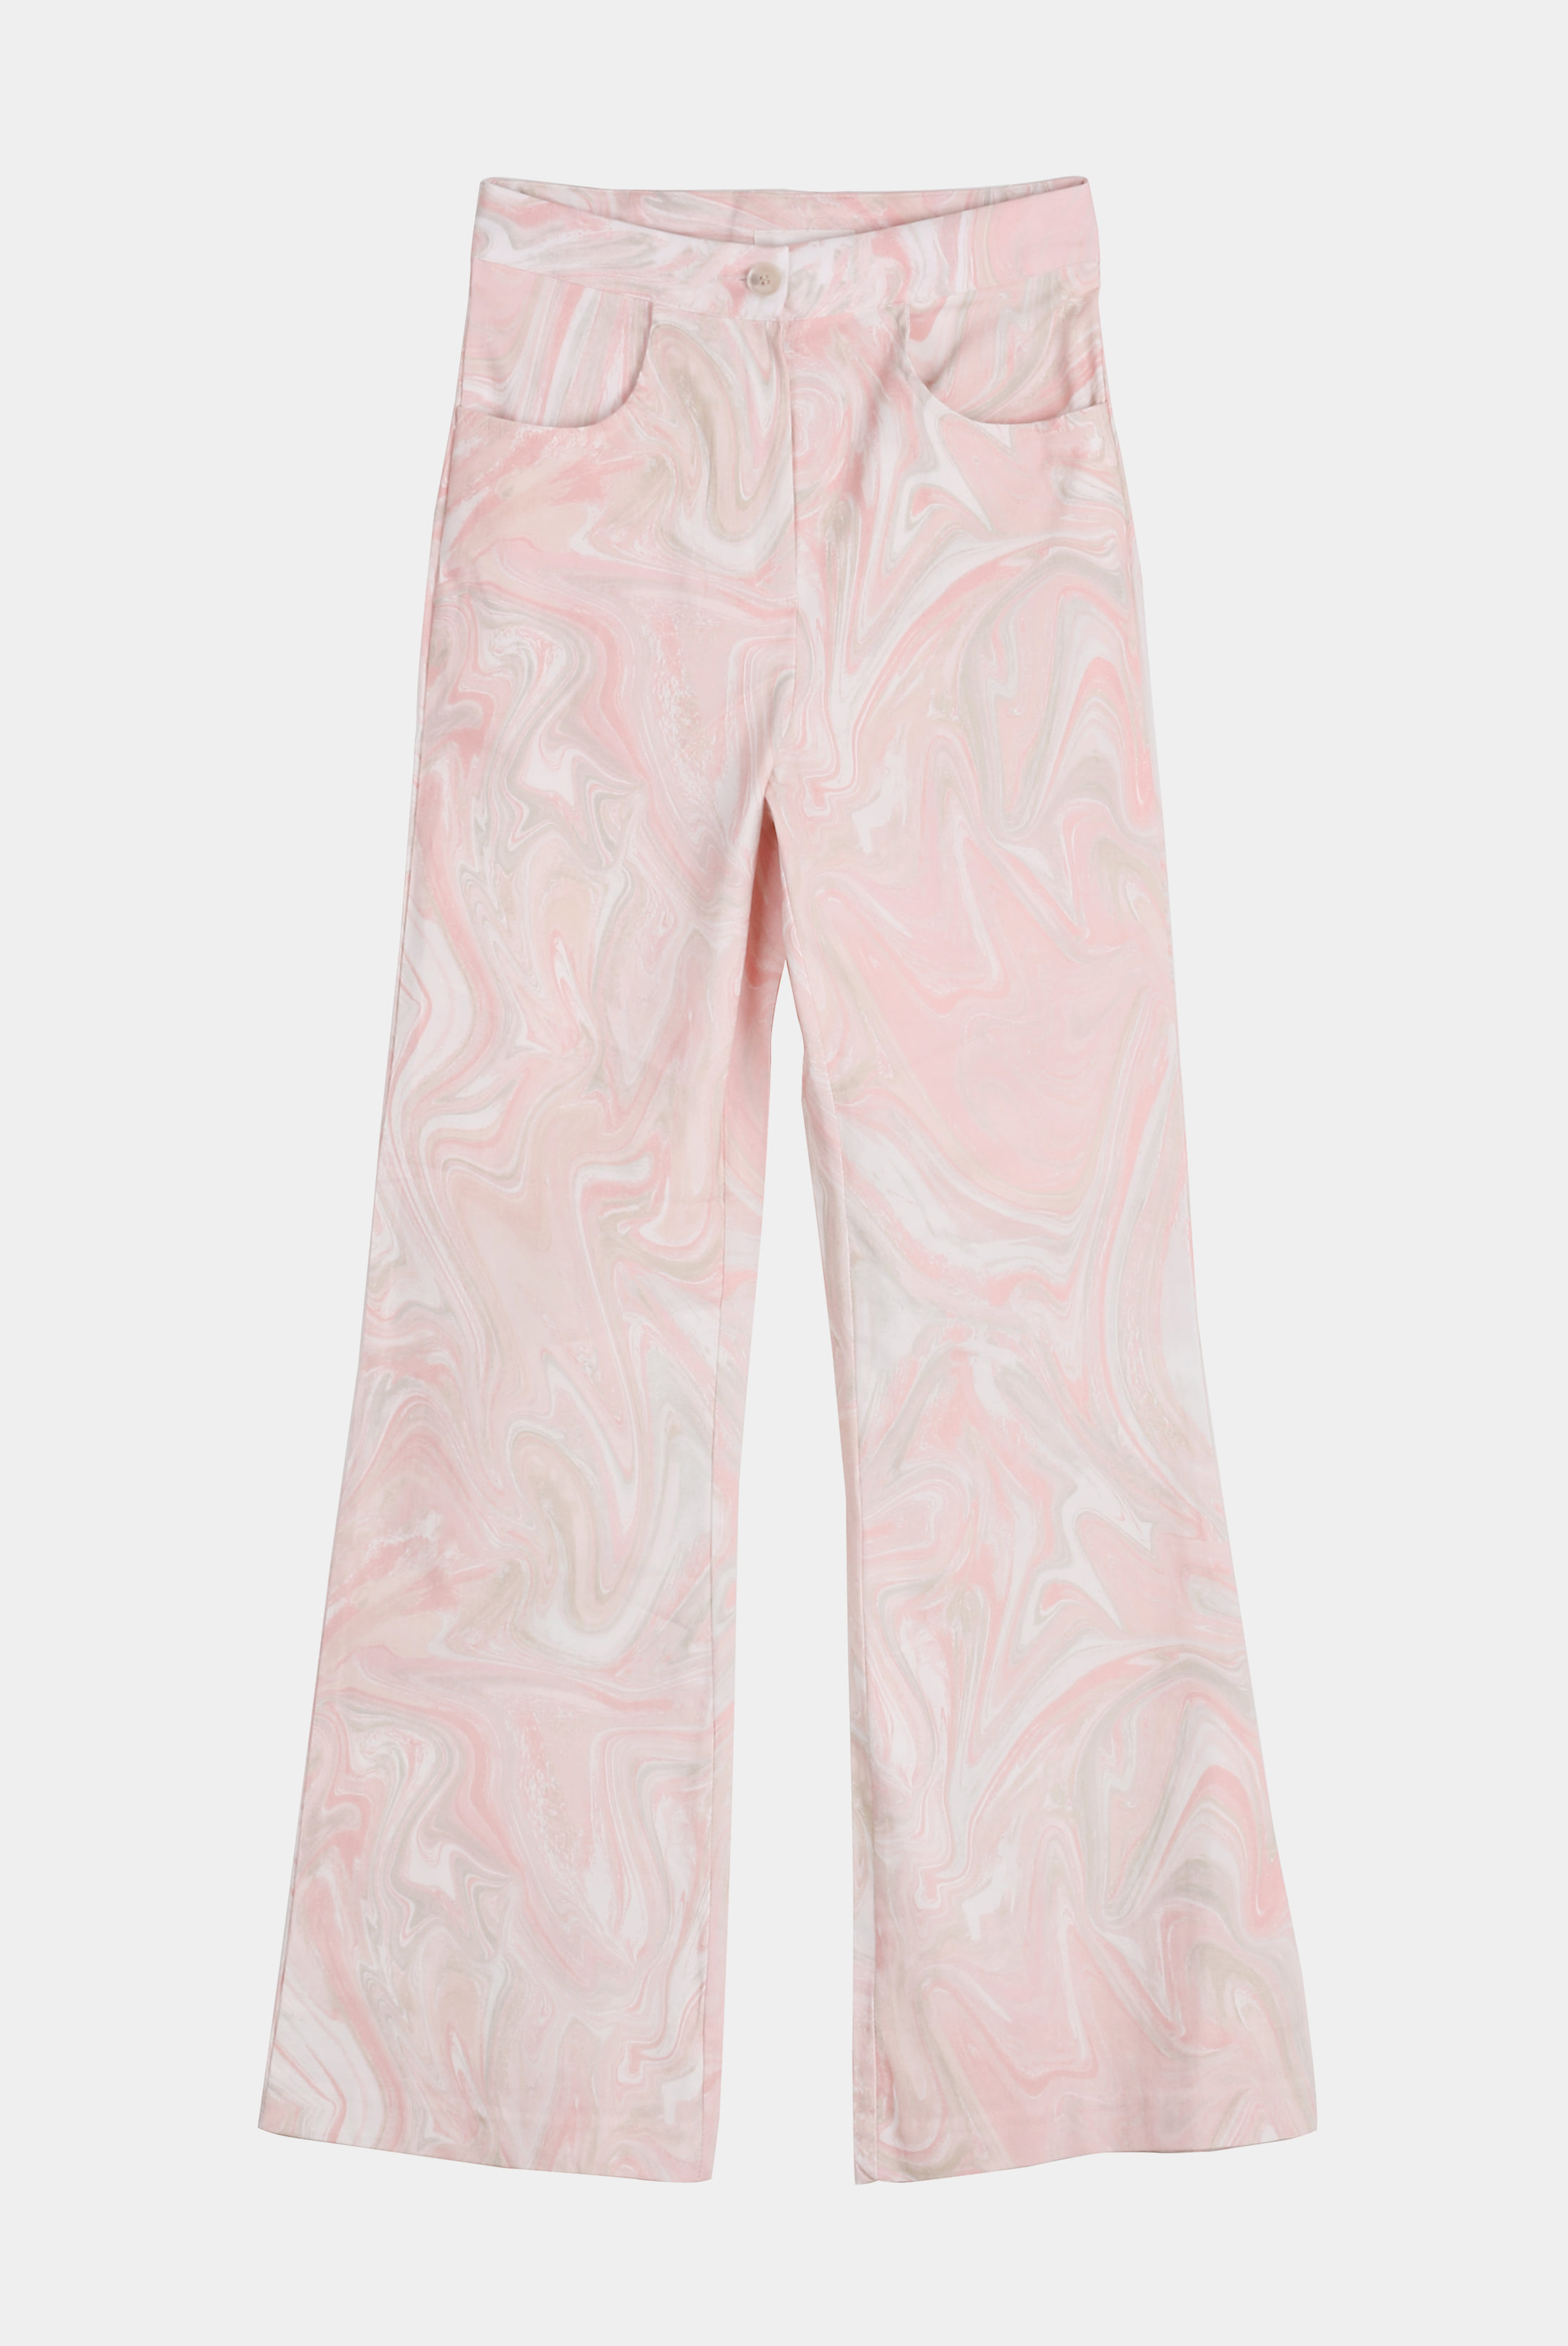 (W) Cream_Curve Trumpet_Pants